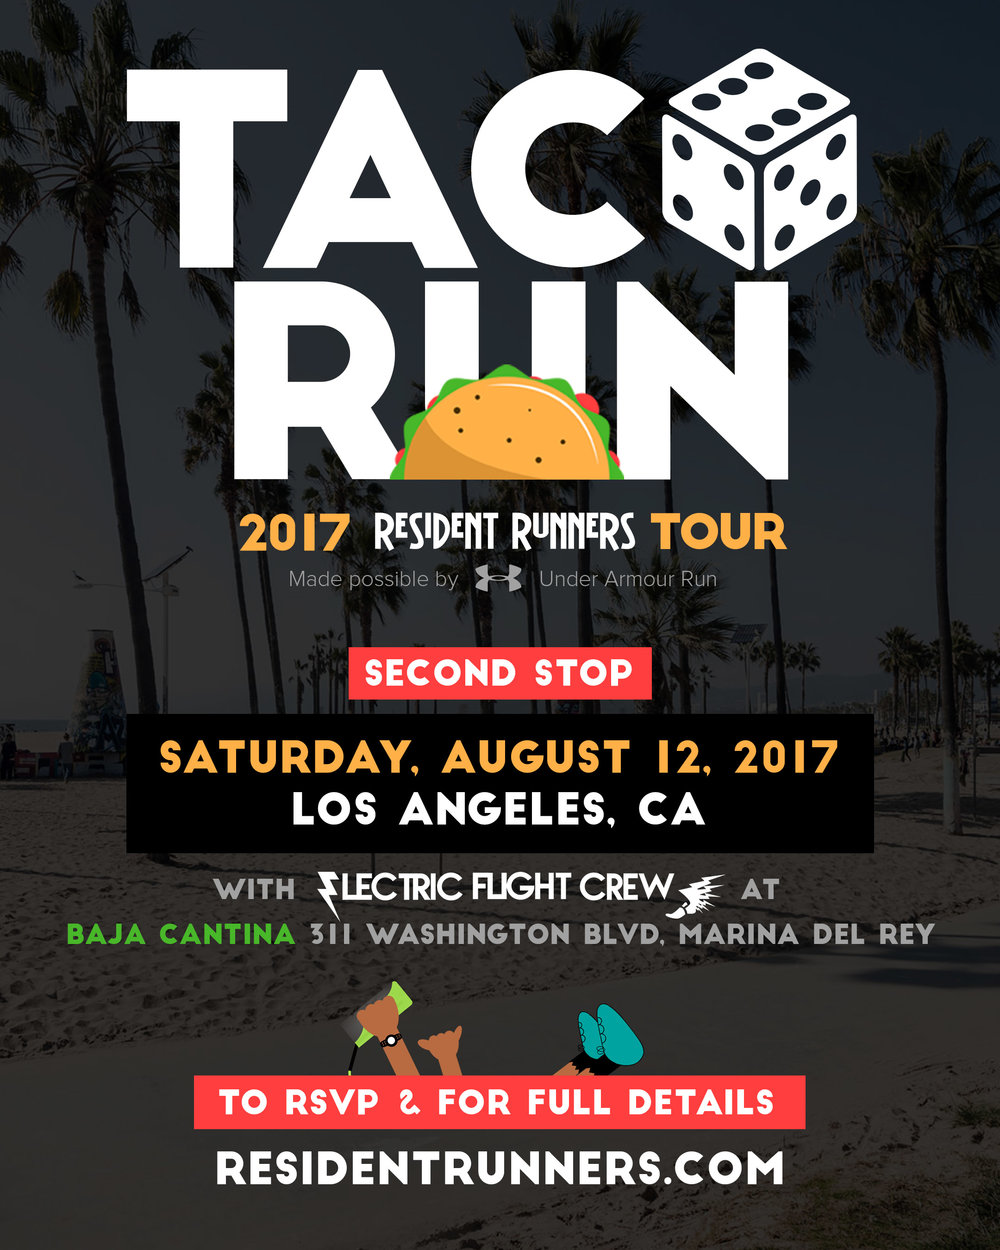 taco_run_tour_flyer_LA_vf_website.jpg